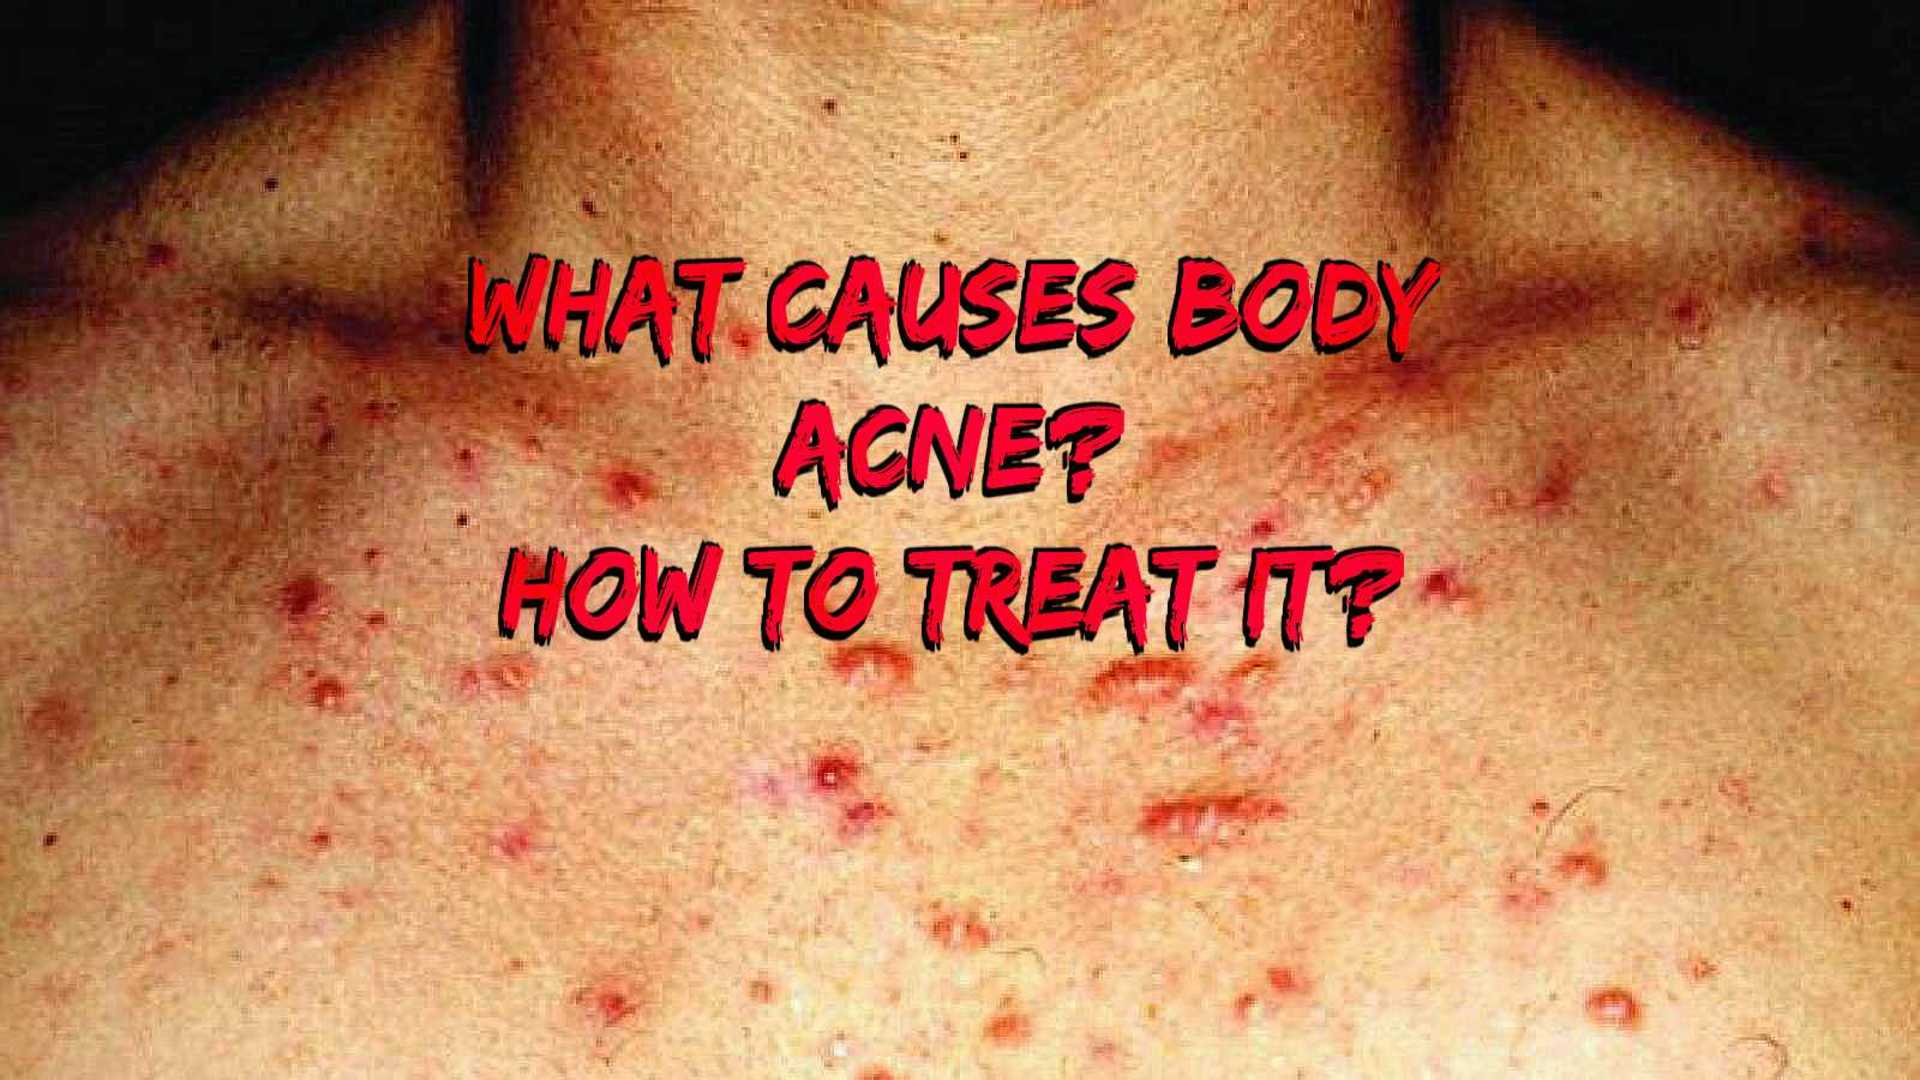 What Causes Body Acne and How to Treat It? image